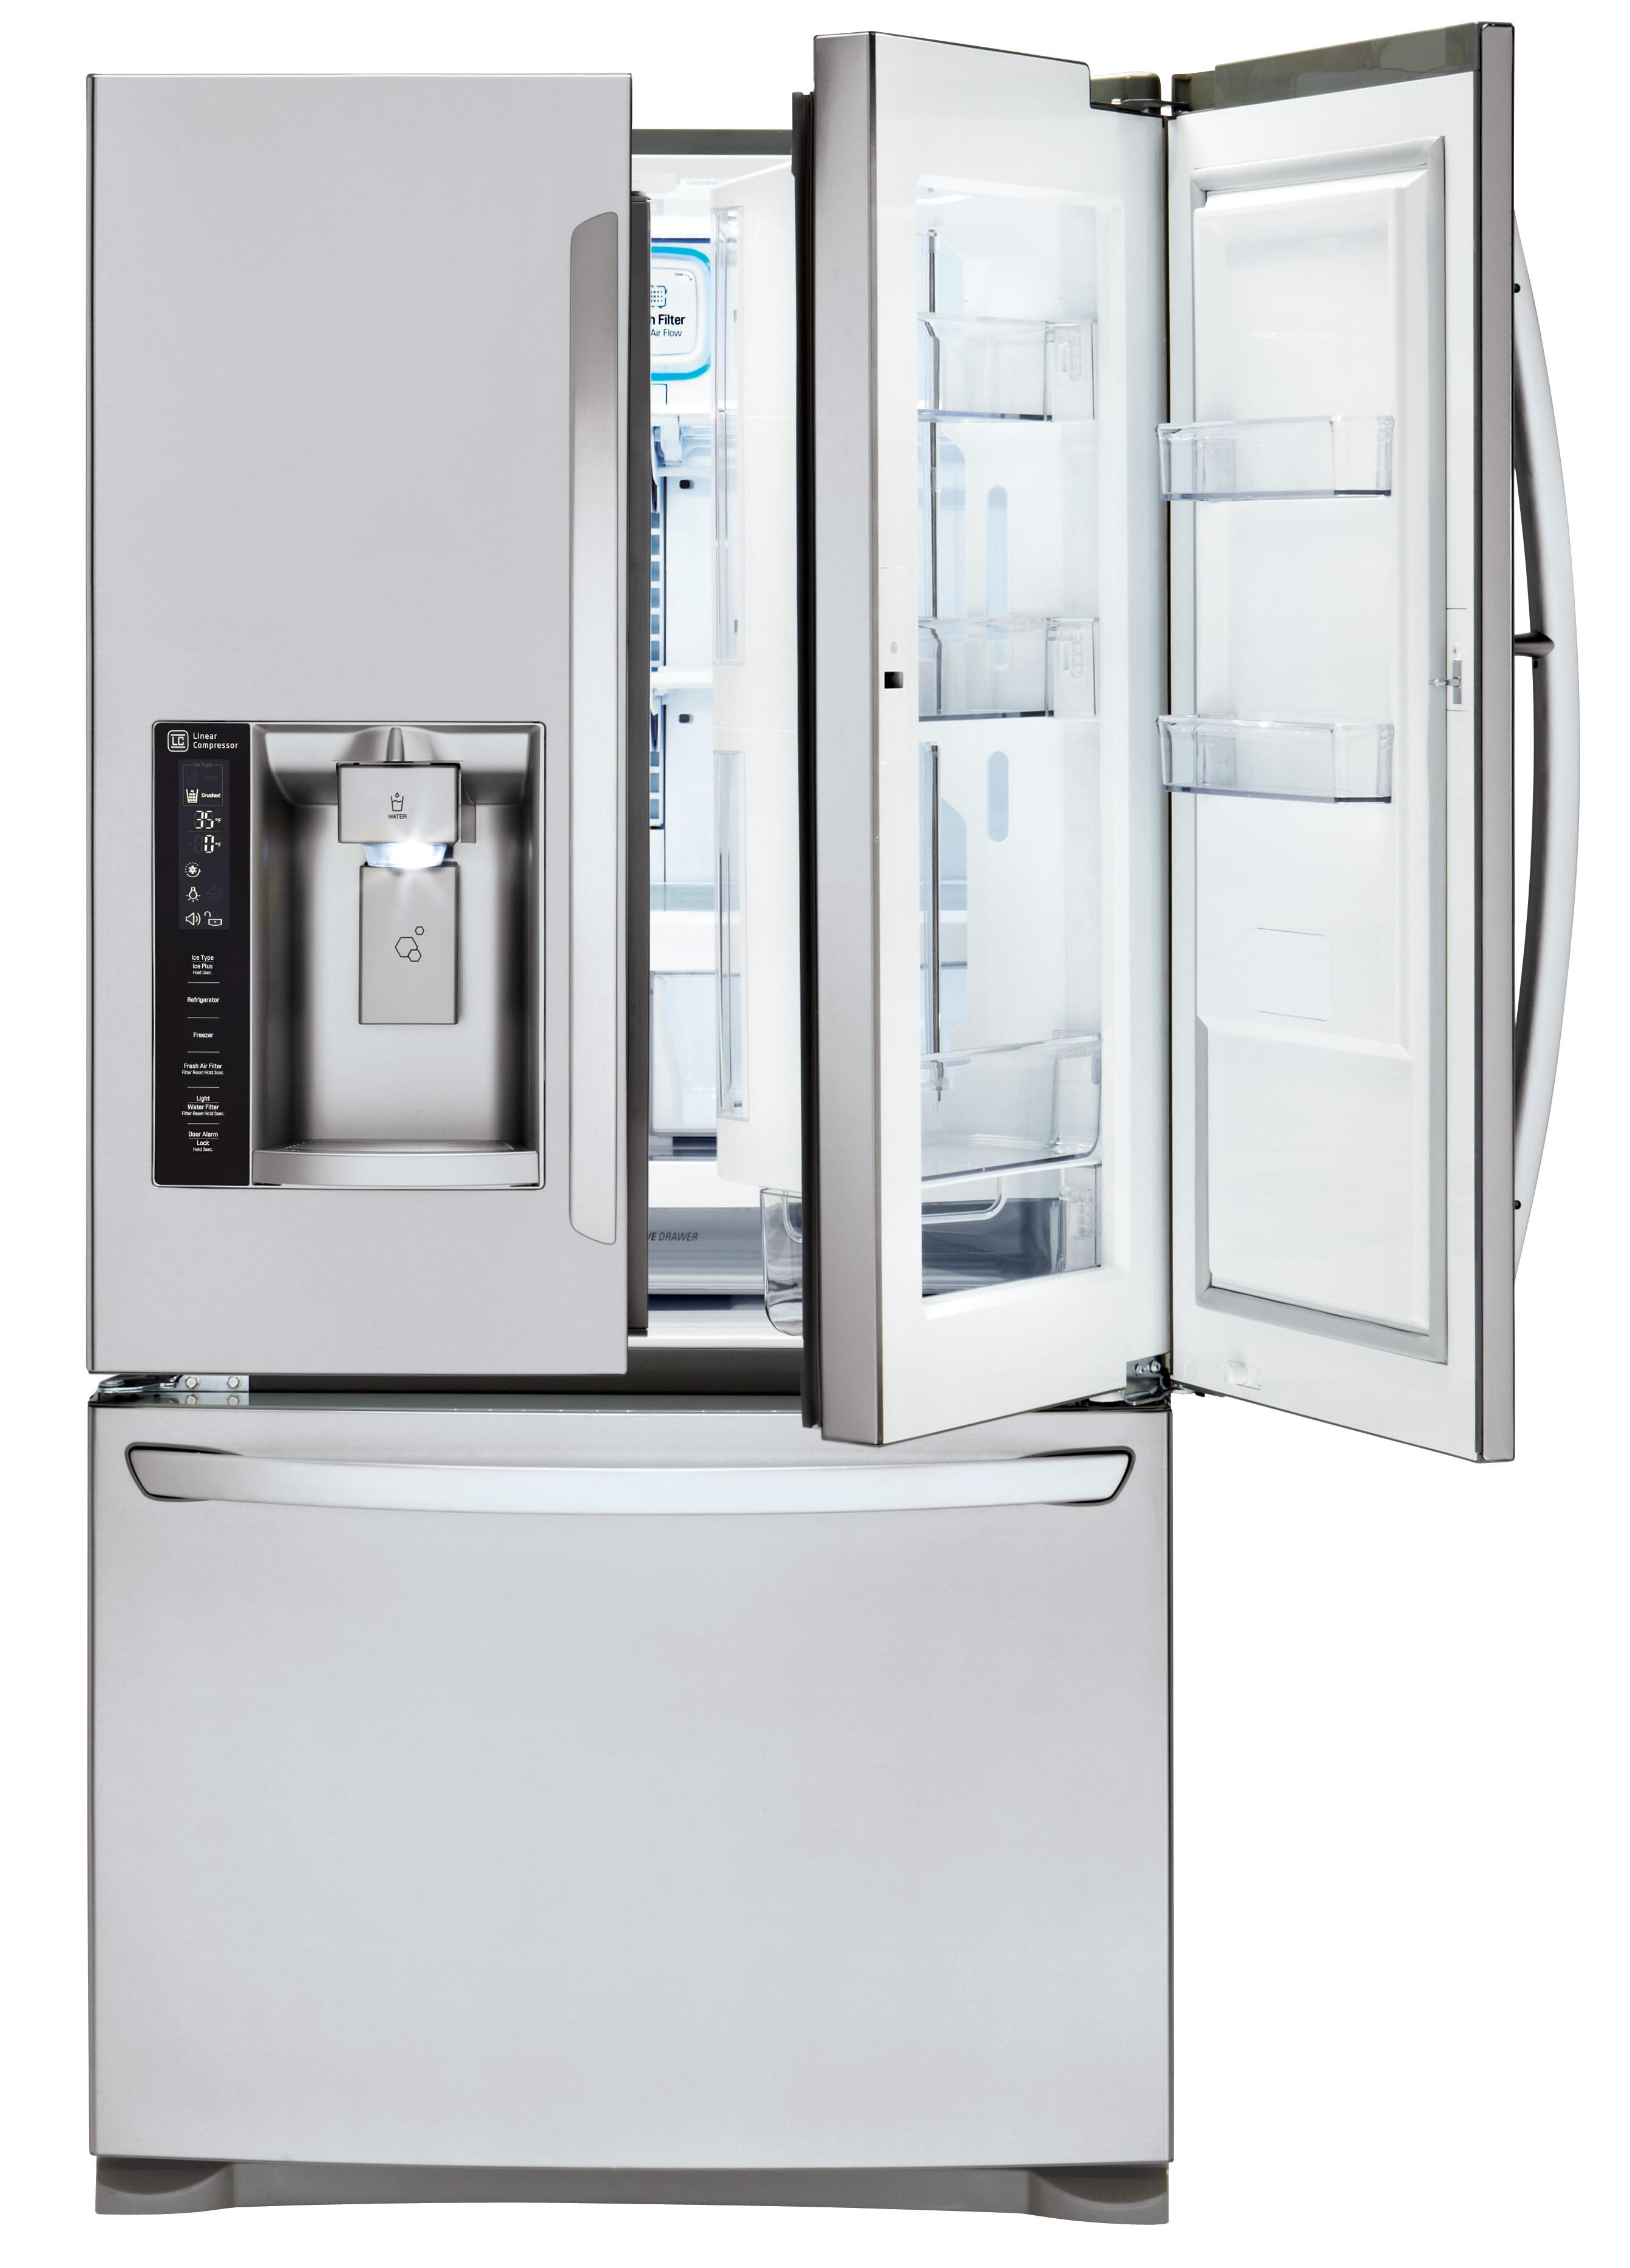 LG Appliances French Door Refrigerators 27 Cu. Ft. 3 Door French Door Fridge - Item Number: LFXS27566S